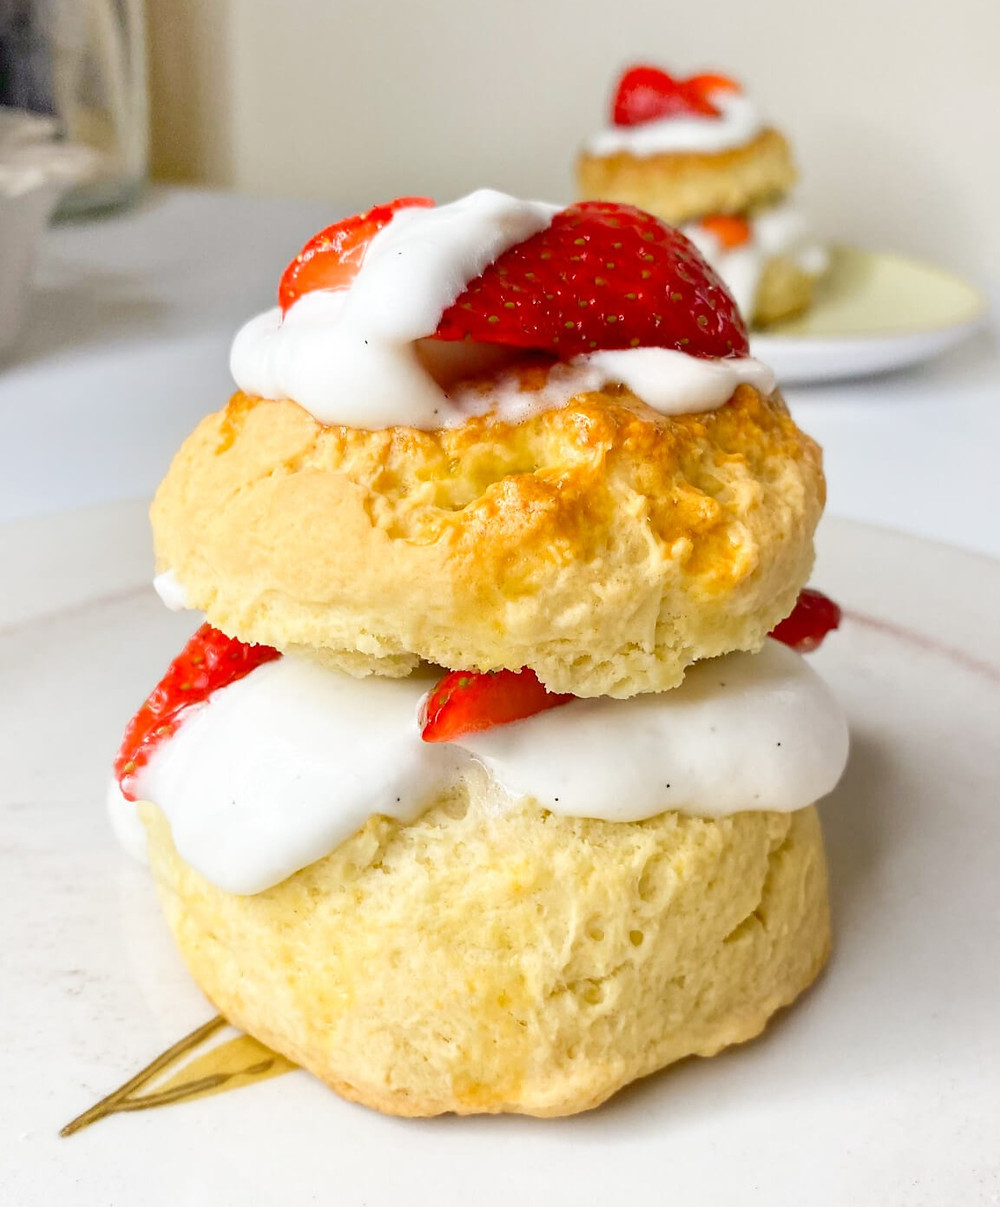 Strawberry shortacke with whipped cream